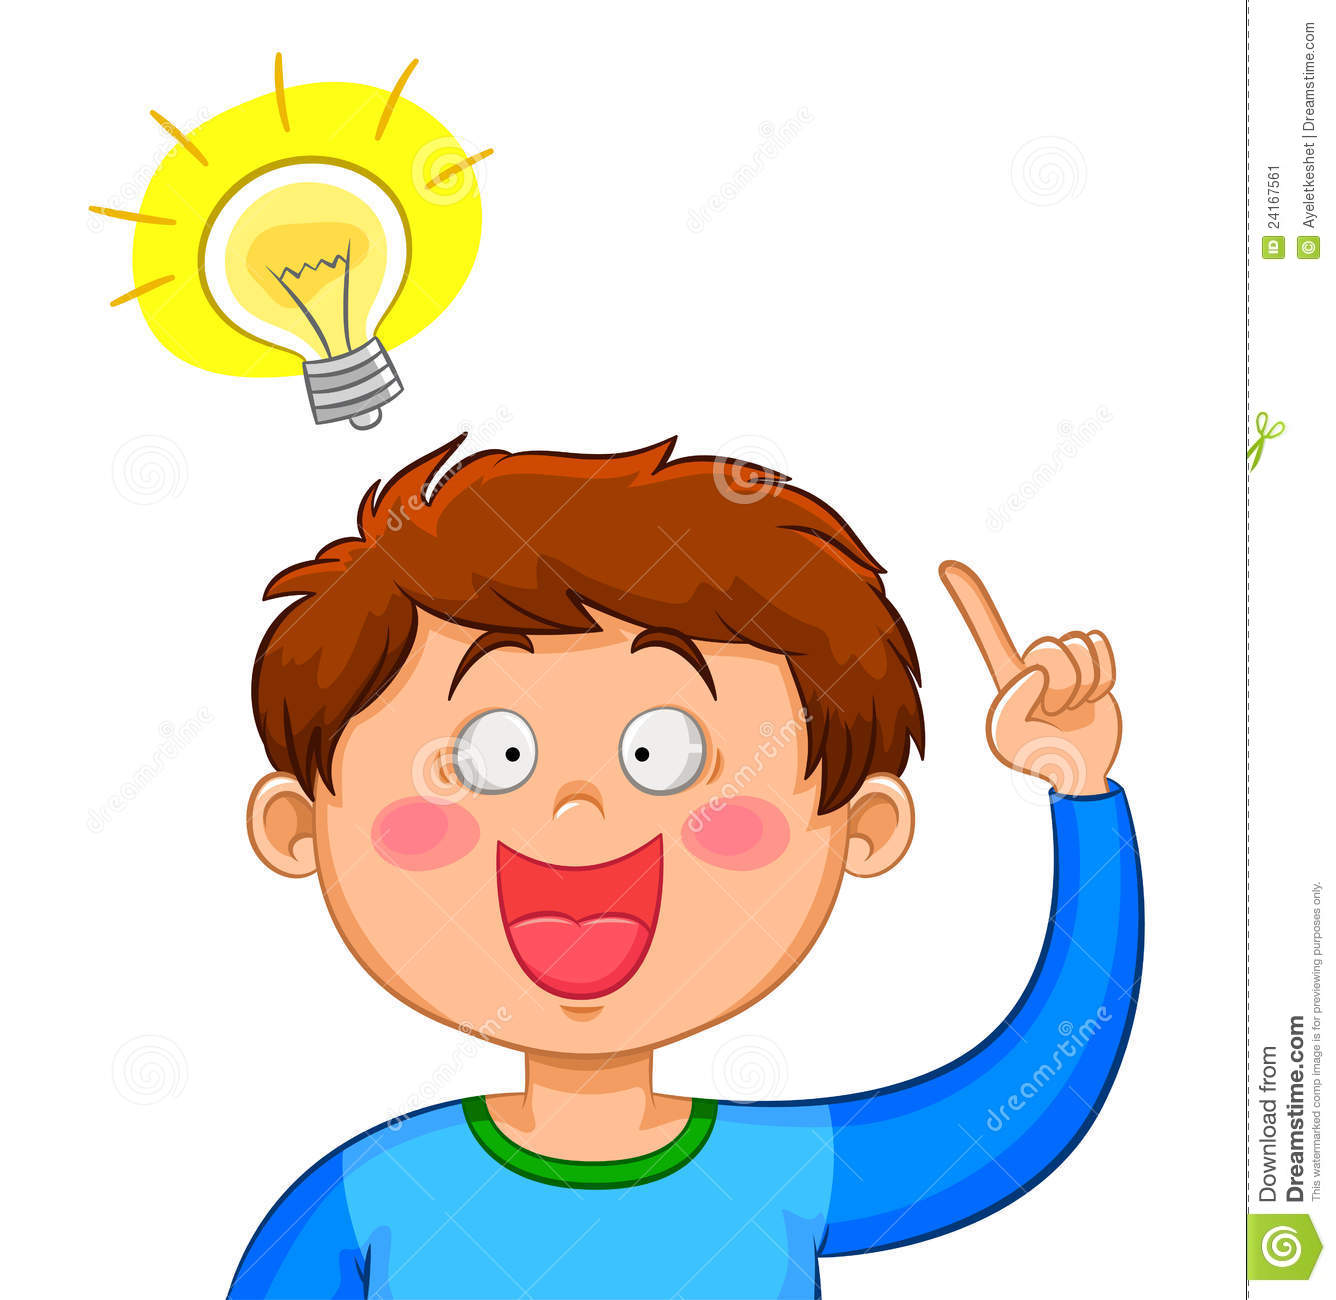 boy with an idea stock vector illustration of brains clip art children reading and writing clip art children reading bible